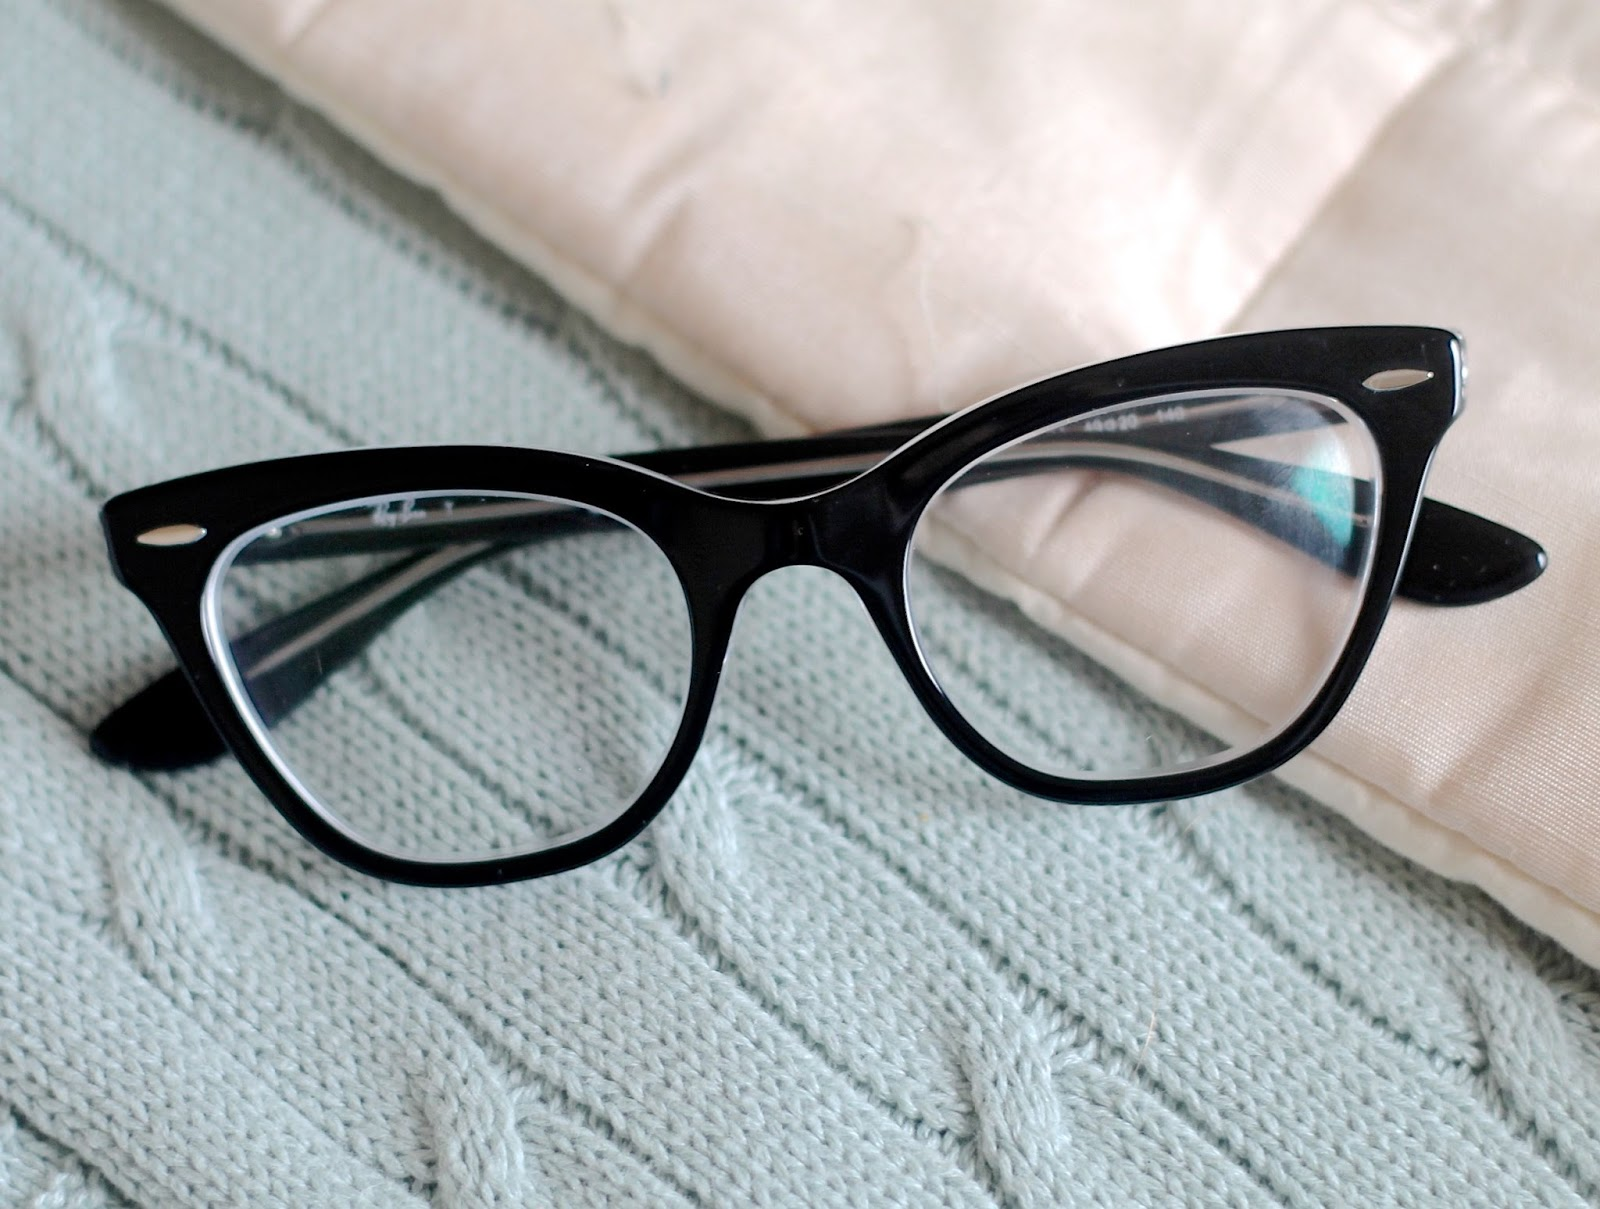 rayban rx5226 catseye in black